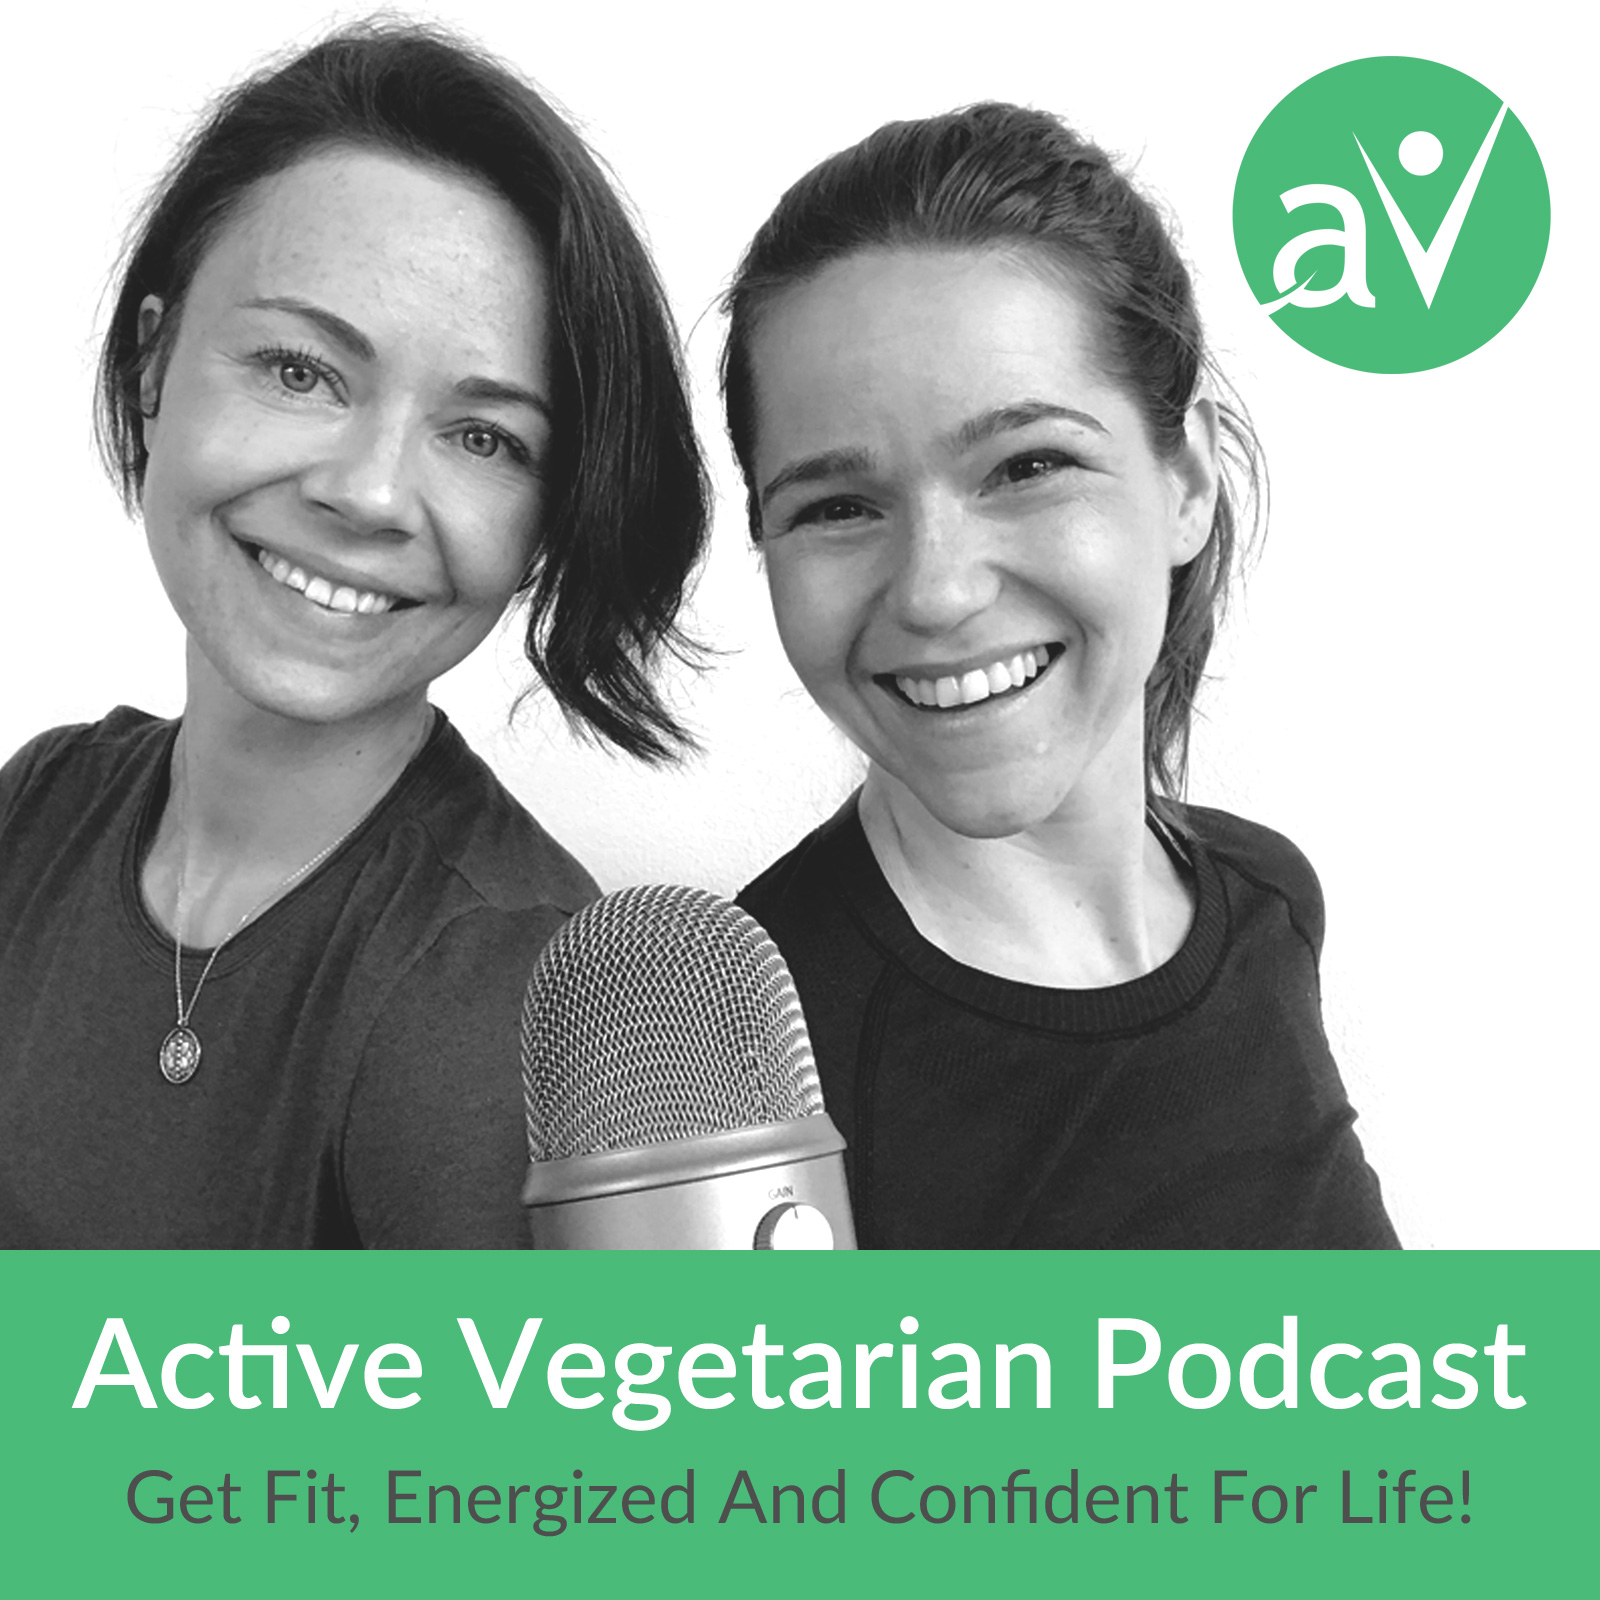 AV 075 – Ten Ways to Stick To Your Plant-Based Diet In a Meat-Eating Household